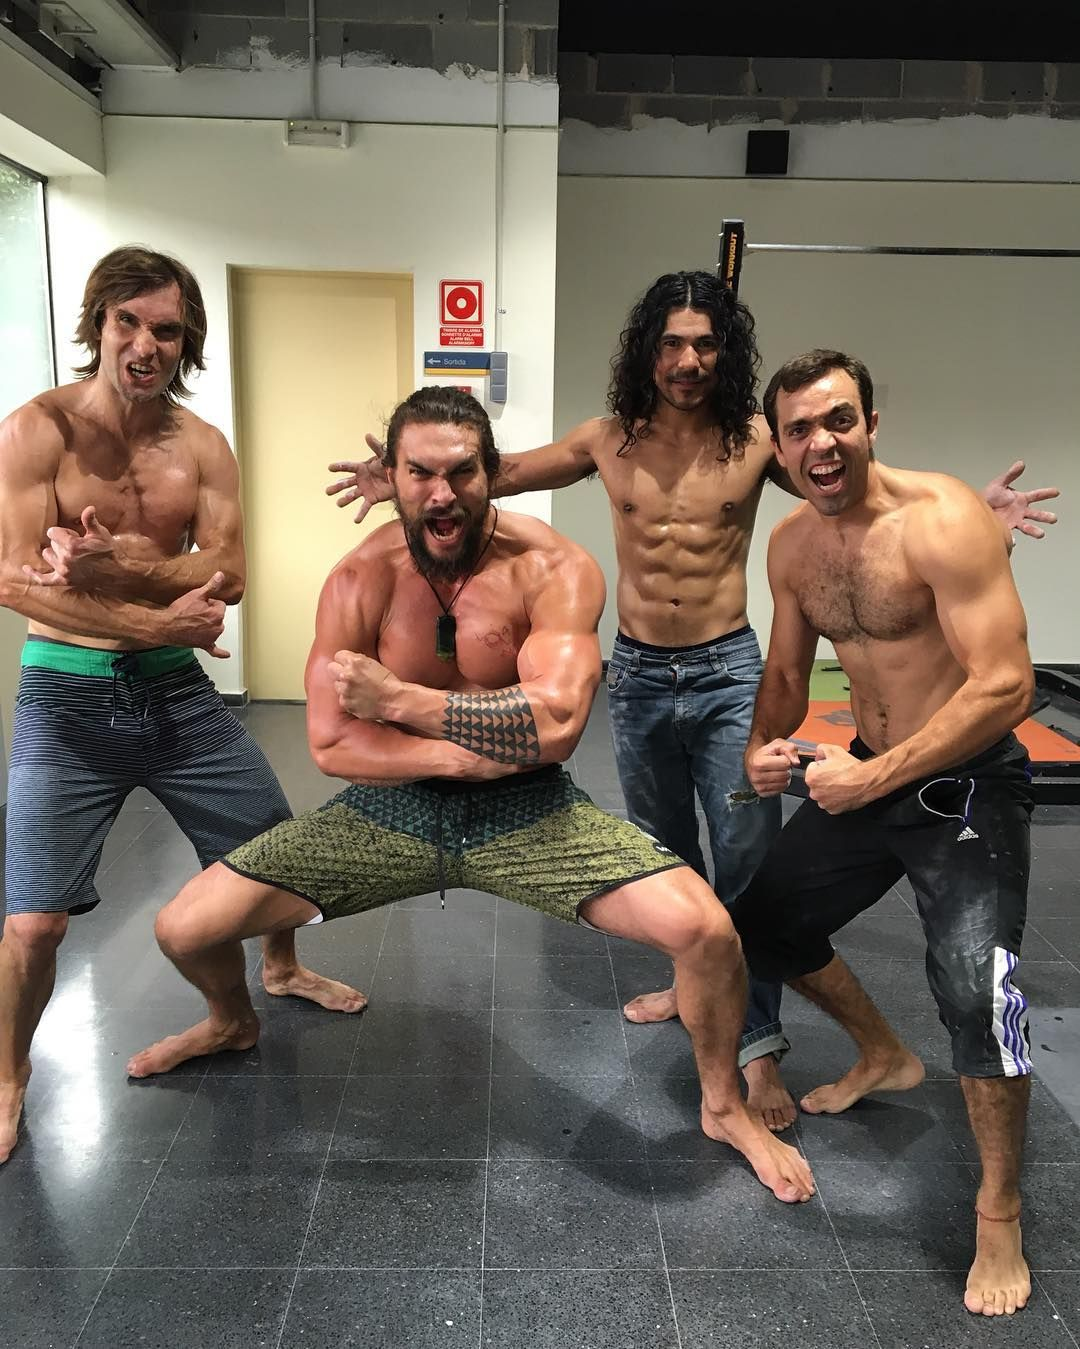 Jason Momoa Exposed: Jason Momoa Has Been Shirtless His Entire Vacation, And We